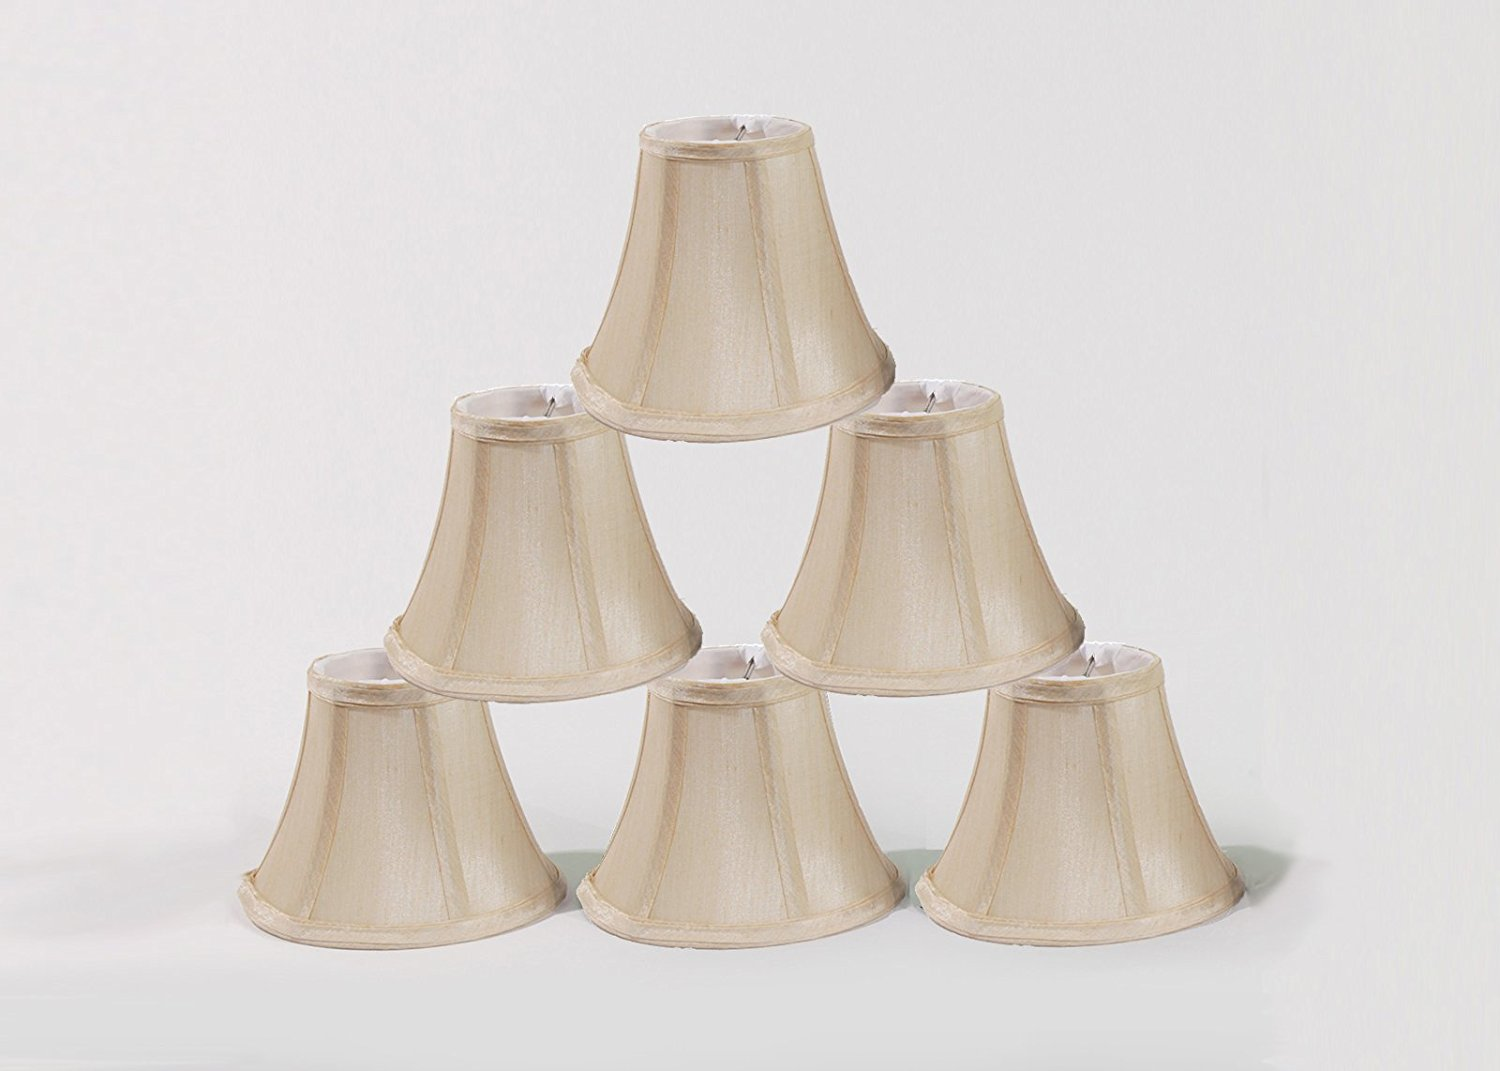 urbanest chandelier lamp shades, set of 6, soft bell 3 DEYSDPY